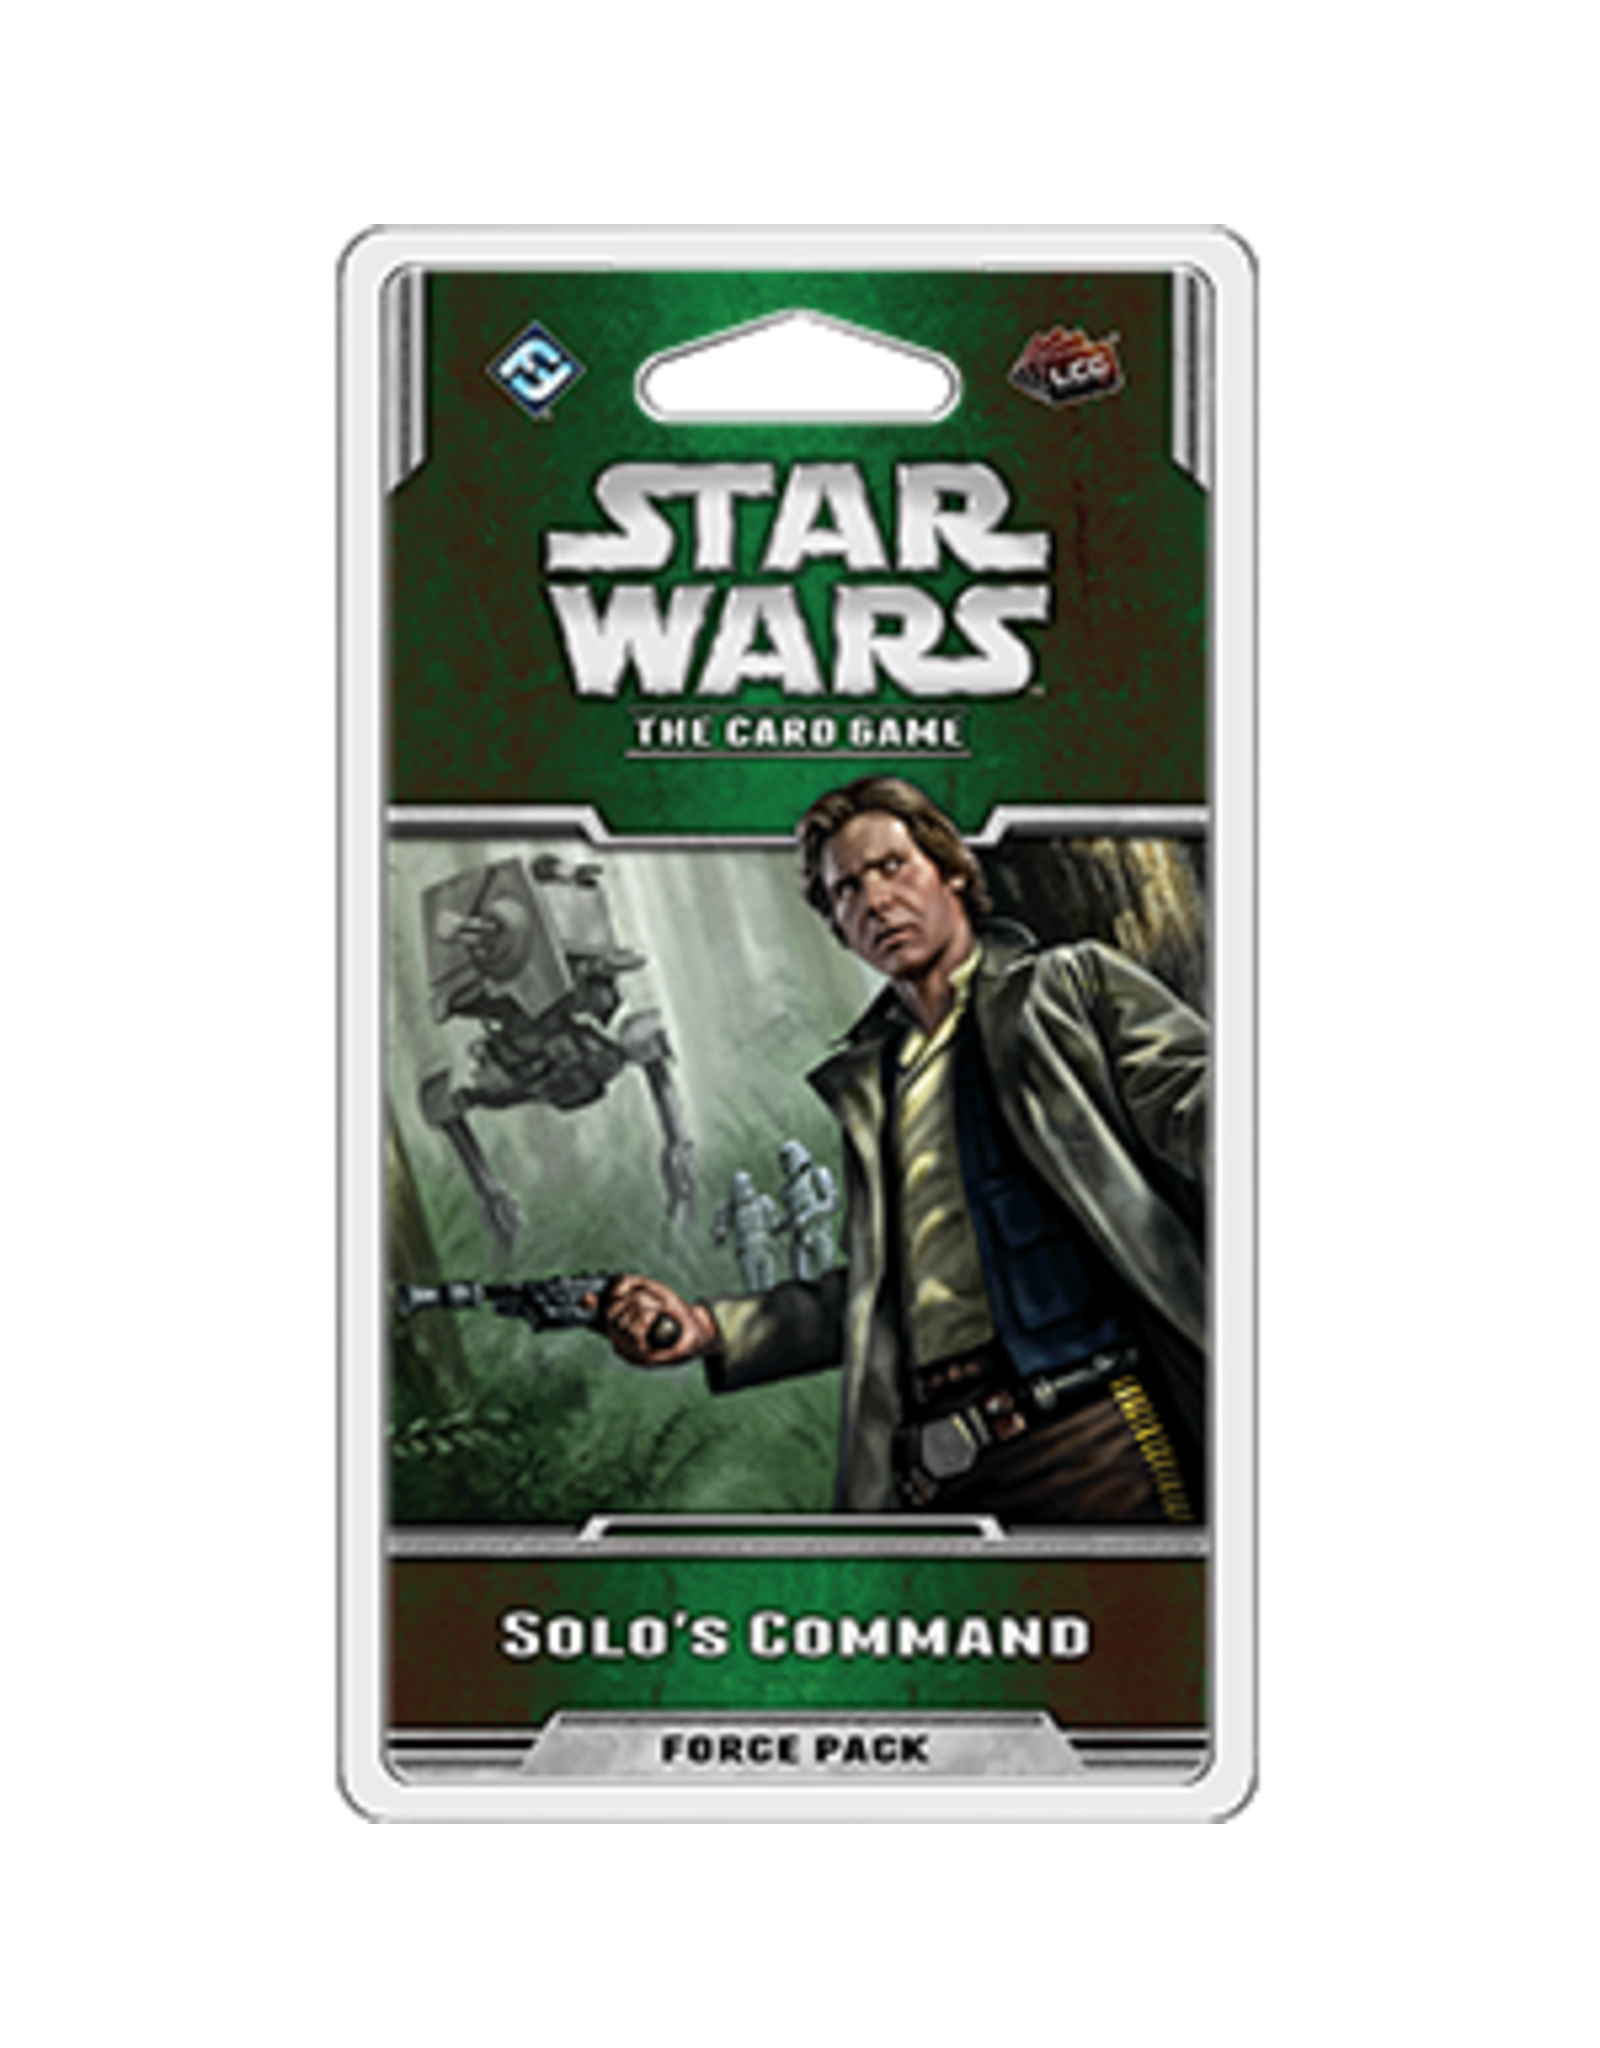 Star Wars LCG: Solo's Command Force Pack